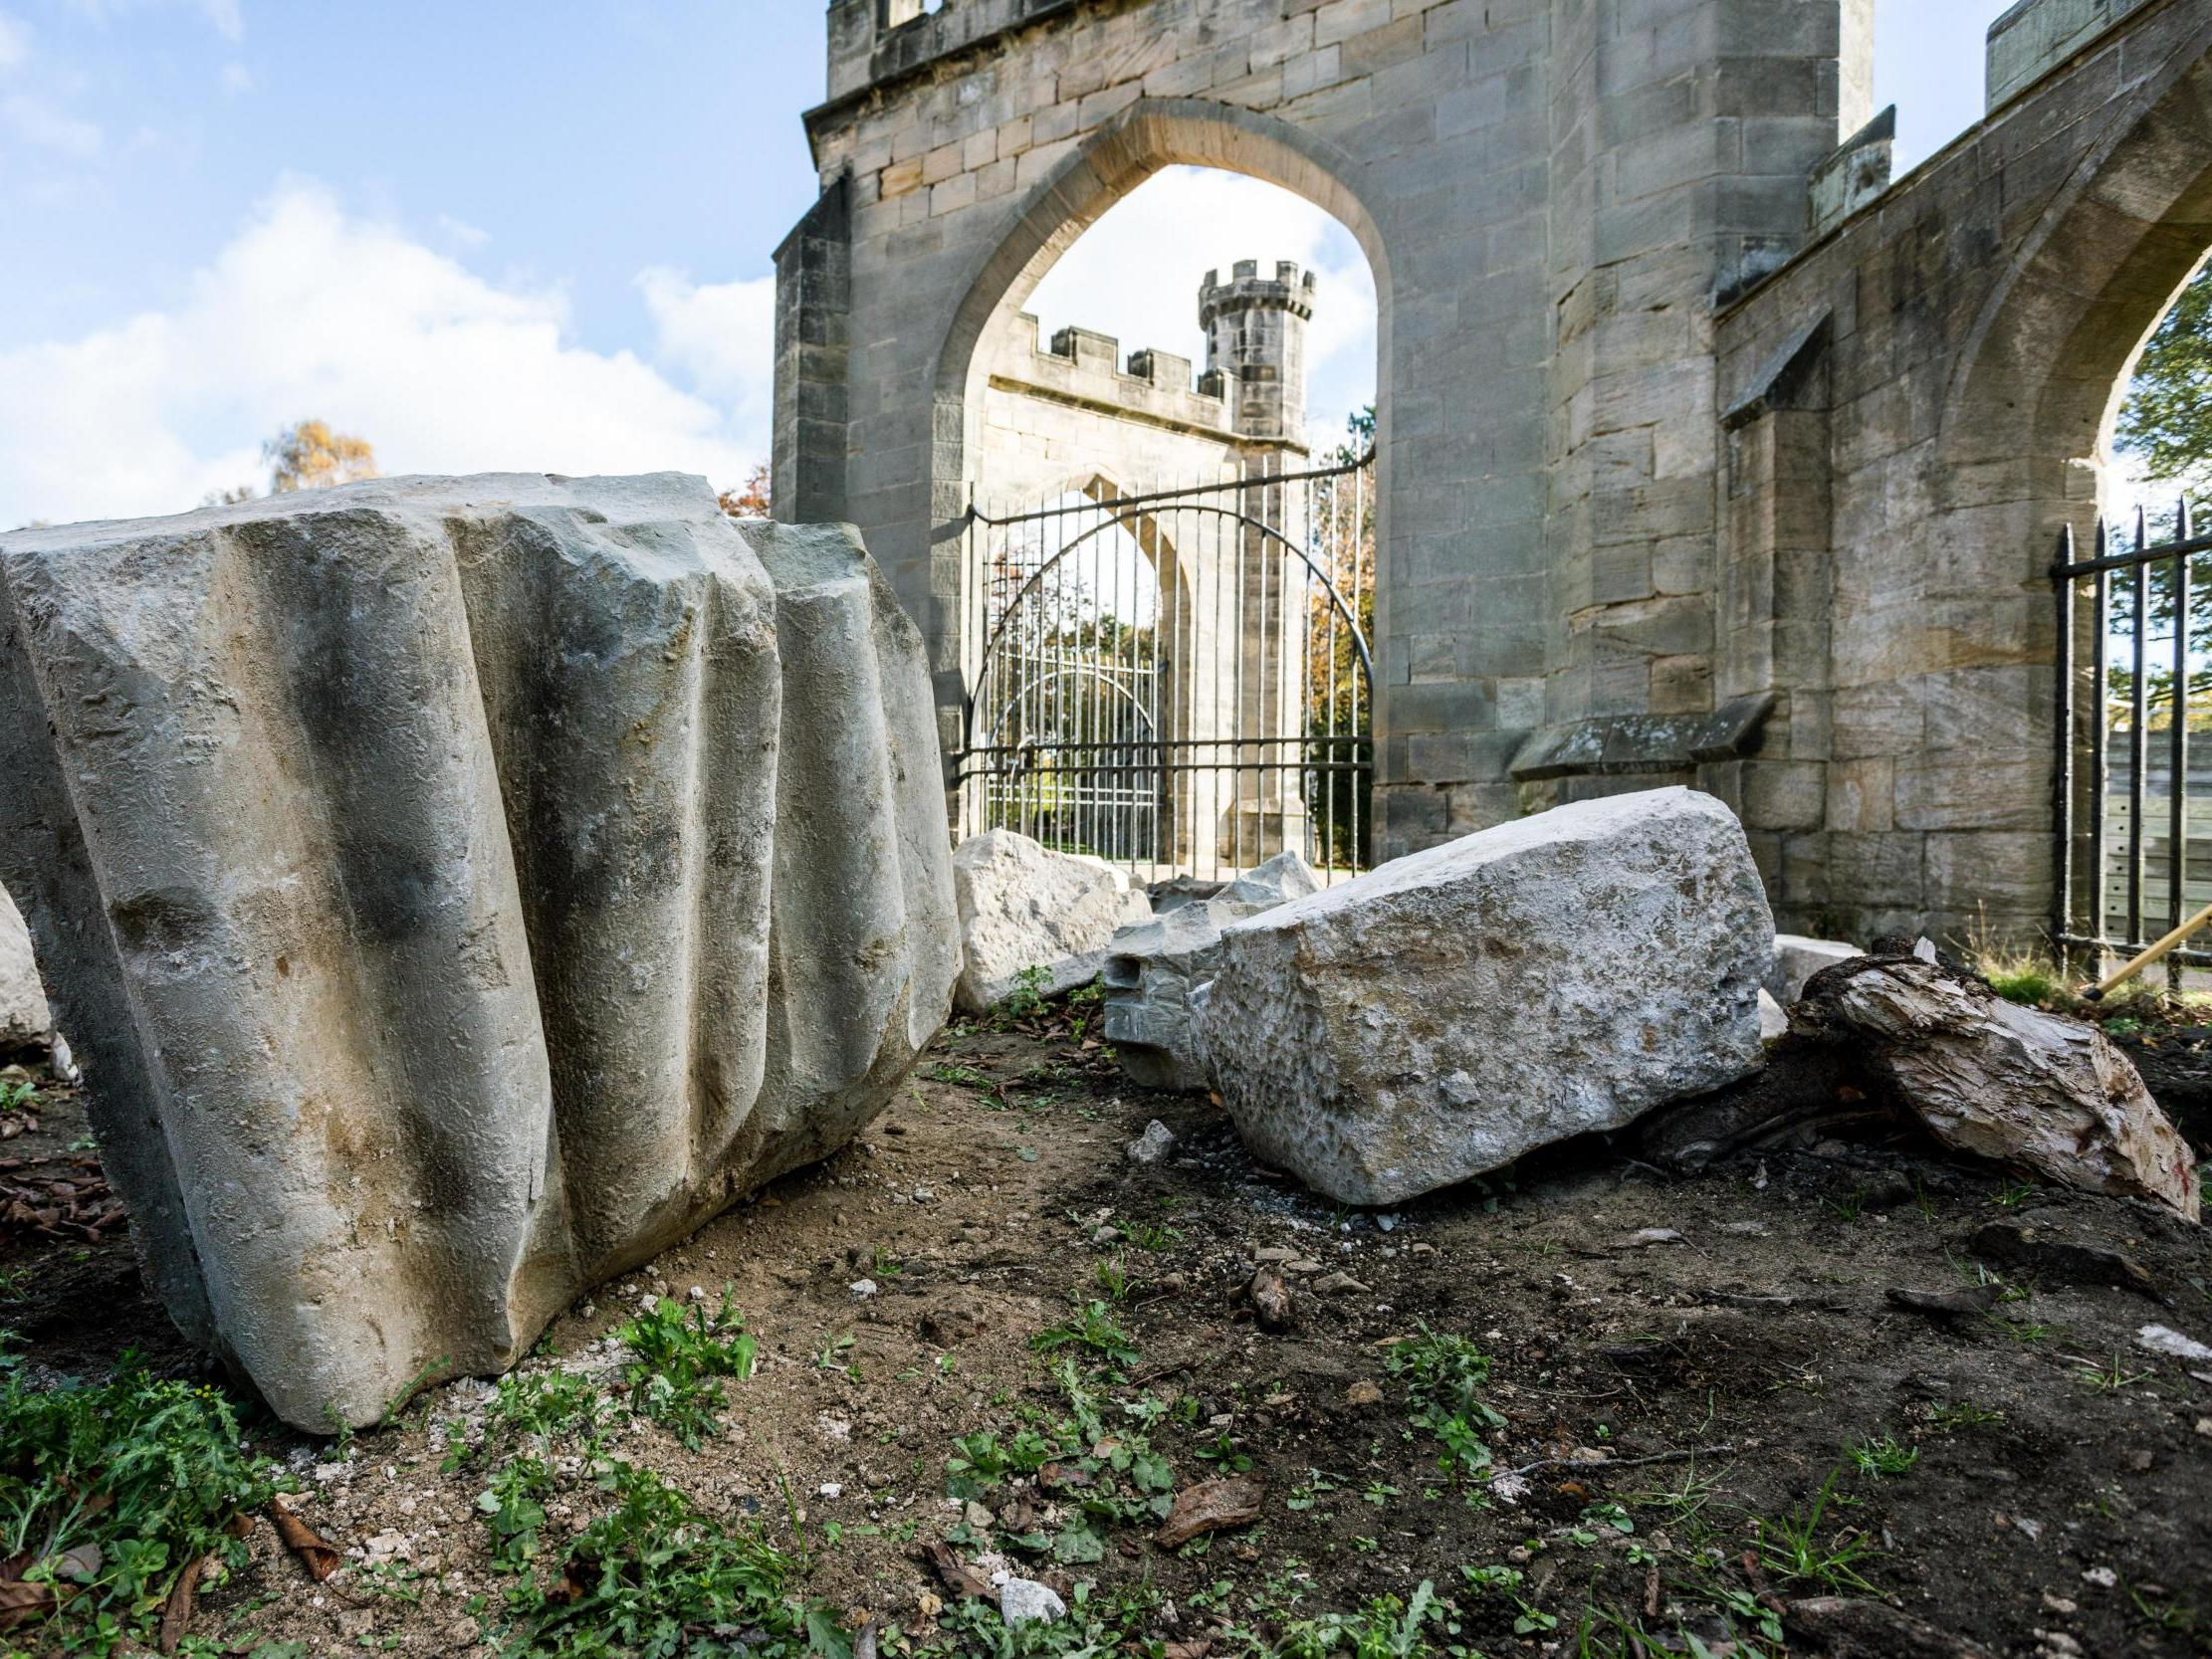 Archaeologists find long-lost architectural masterpiece inside important medieval fortress